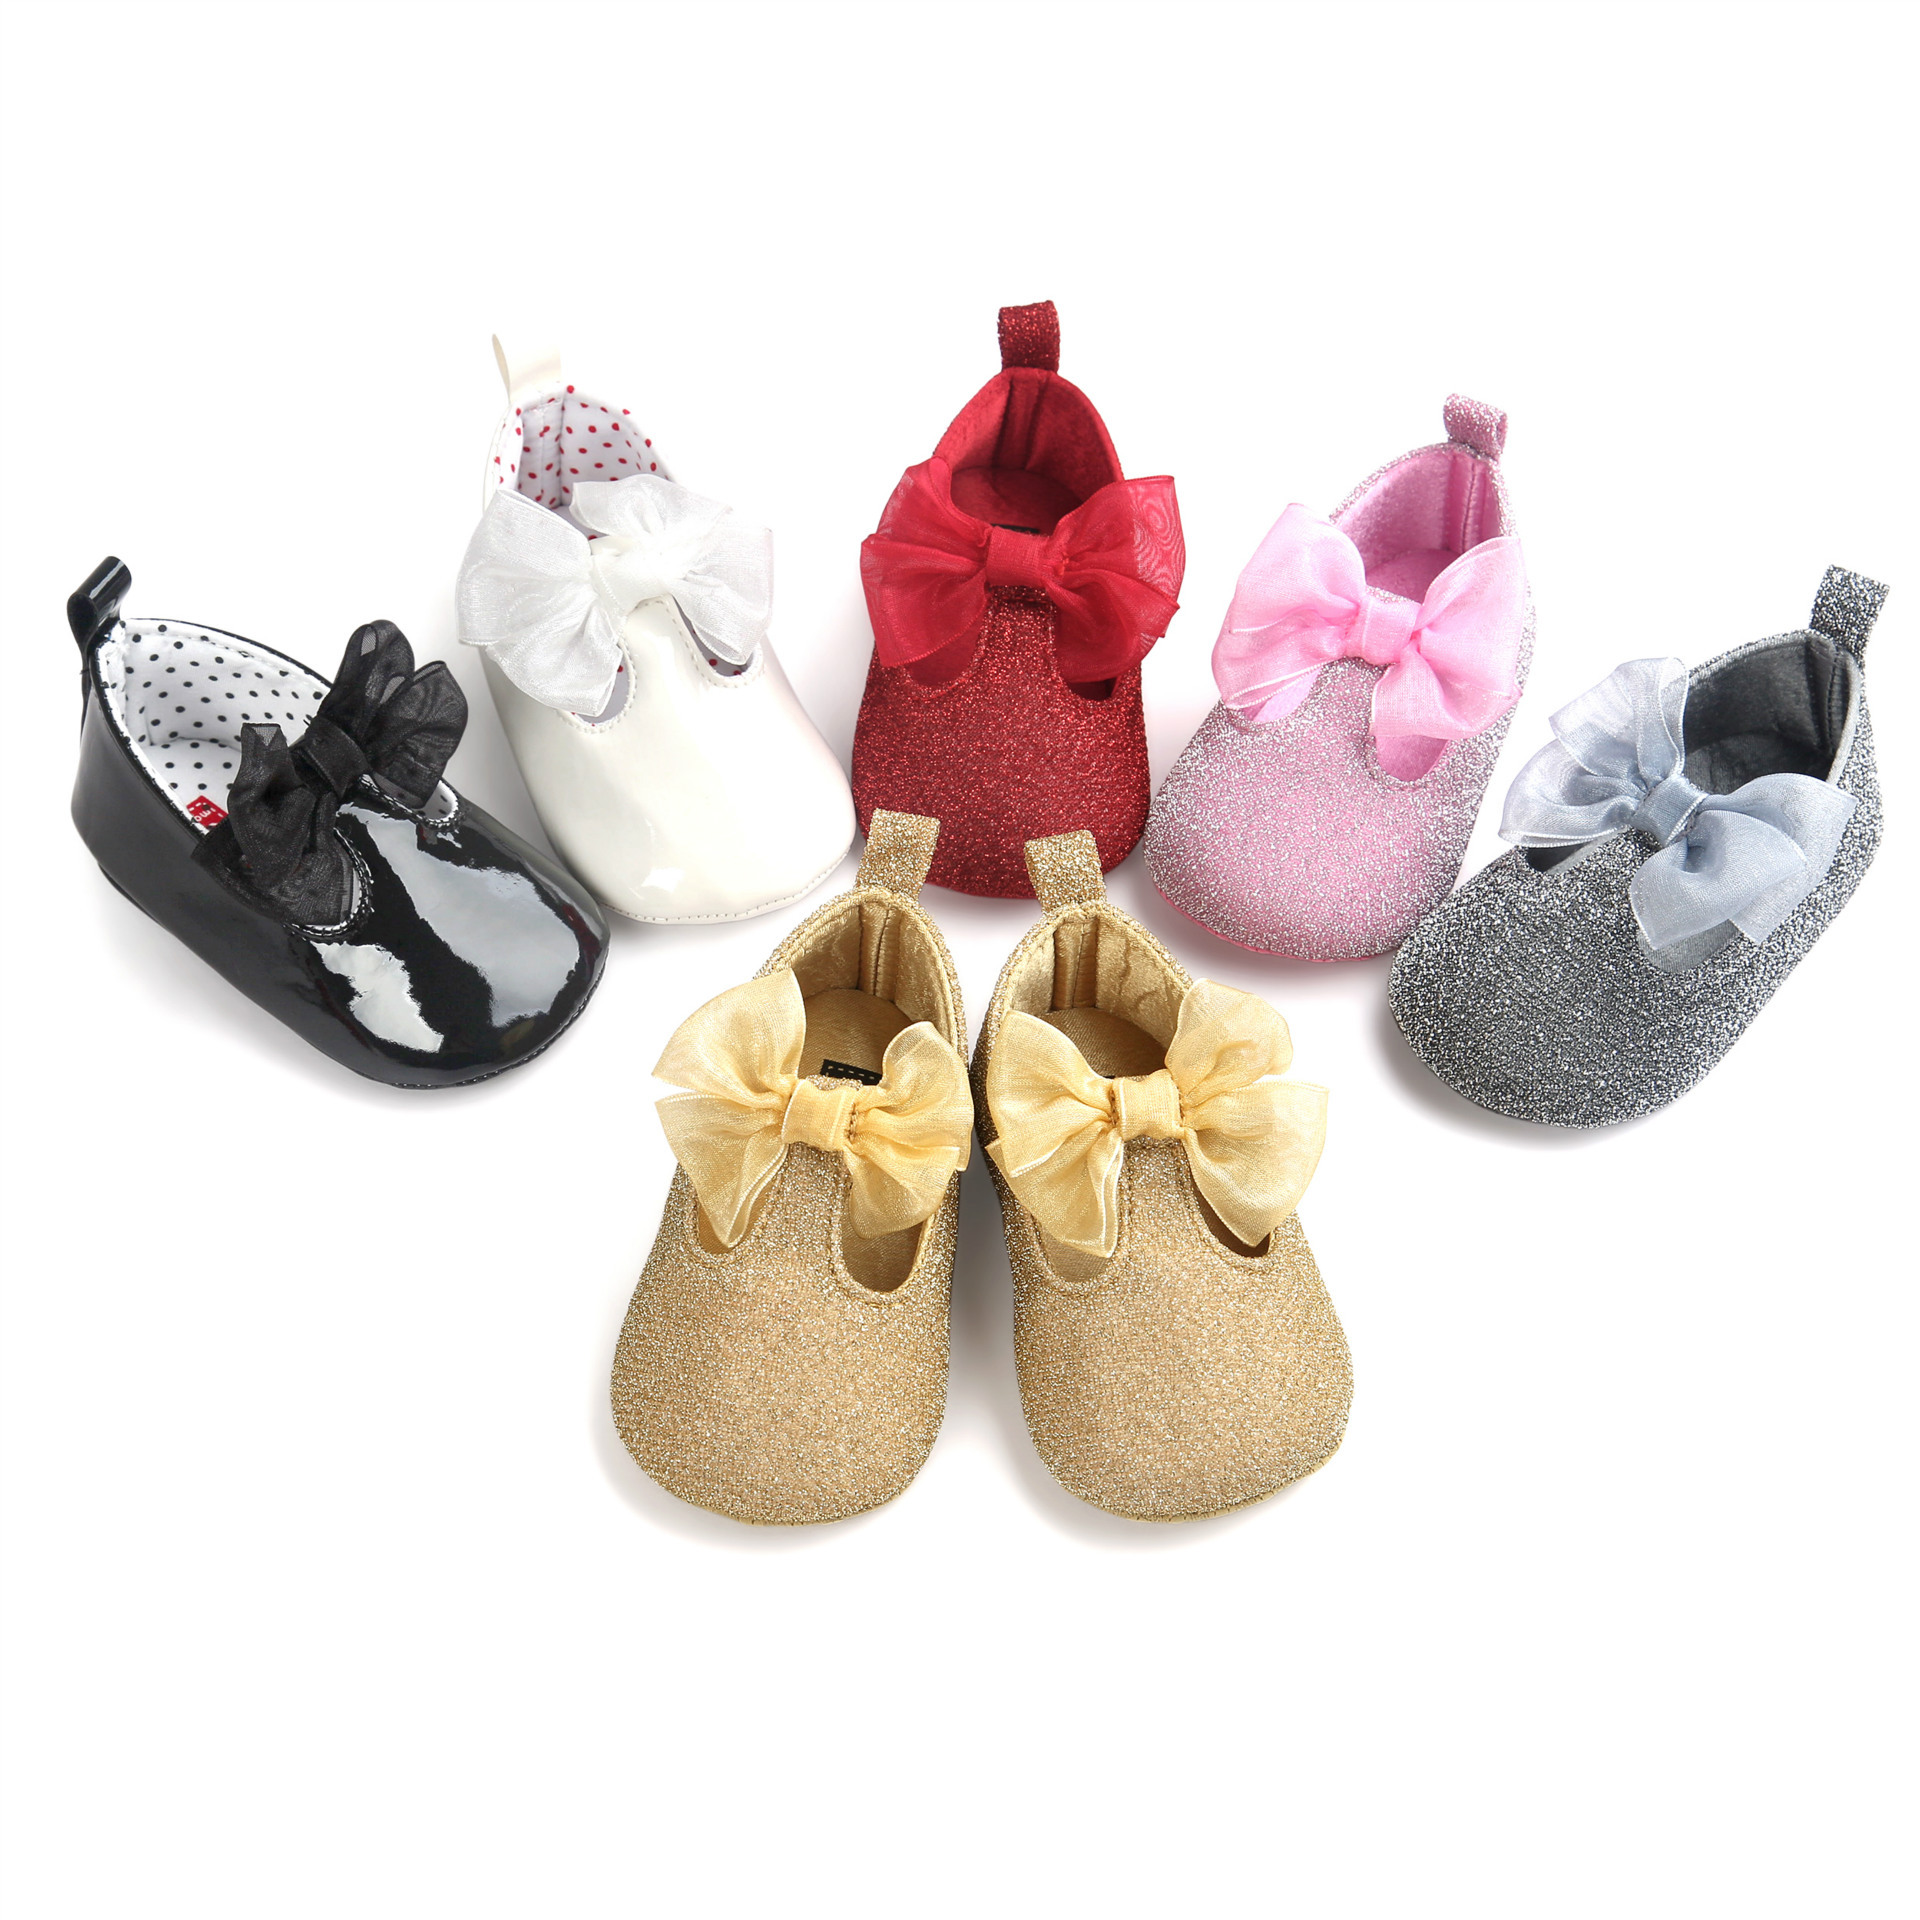 ROMIRUS Baby Shoes Leather & Bling Cloth Female Girls Toddler Shoes Ballet Princess Shoes Newborn Gift First Walkers